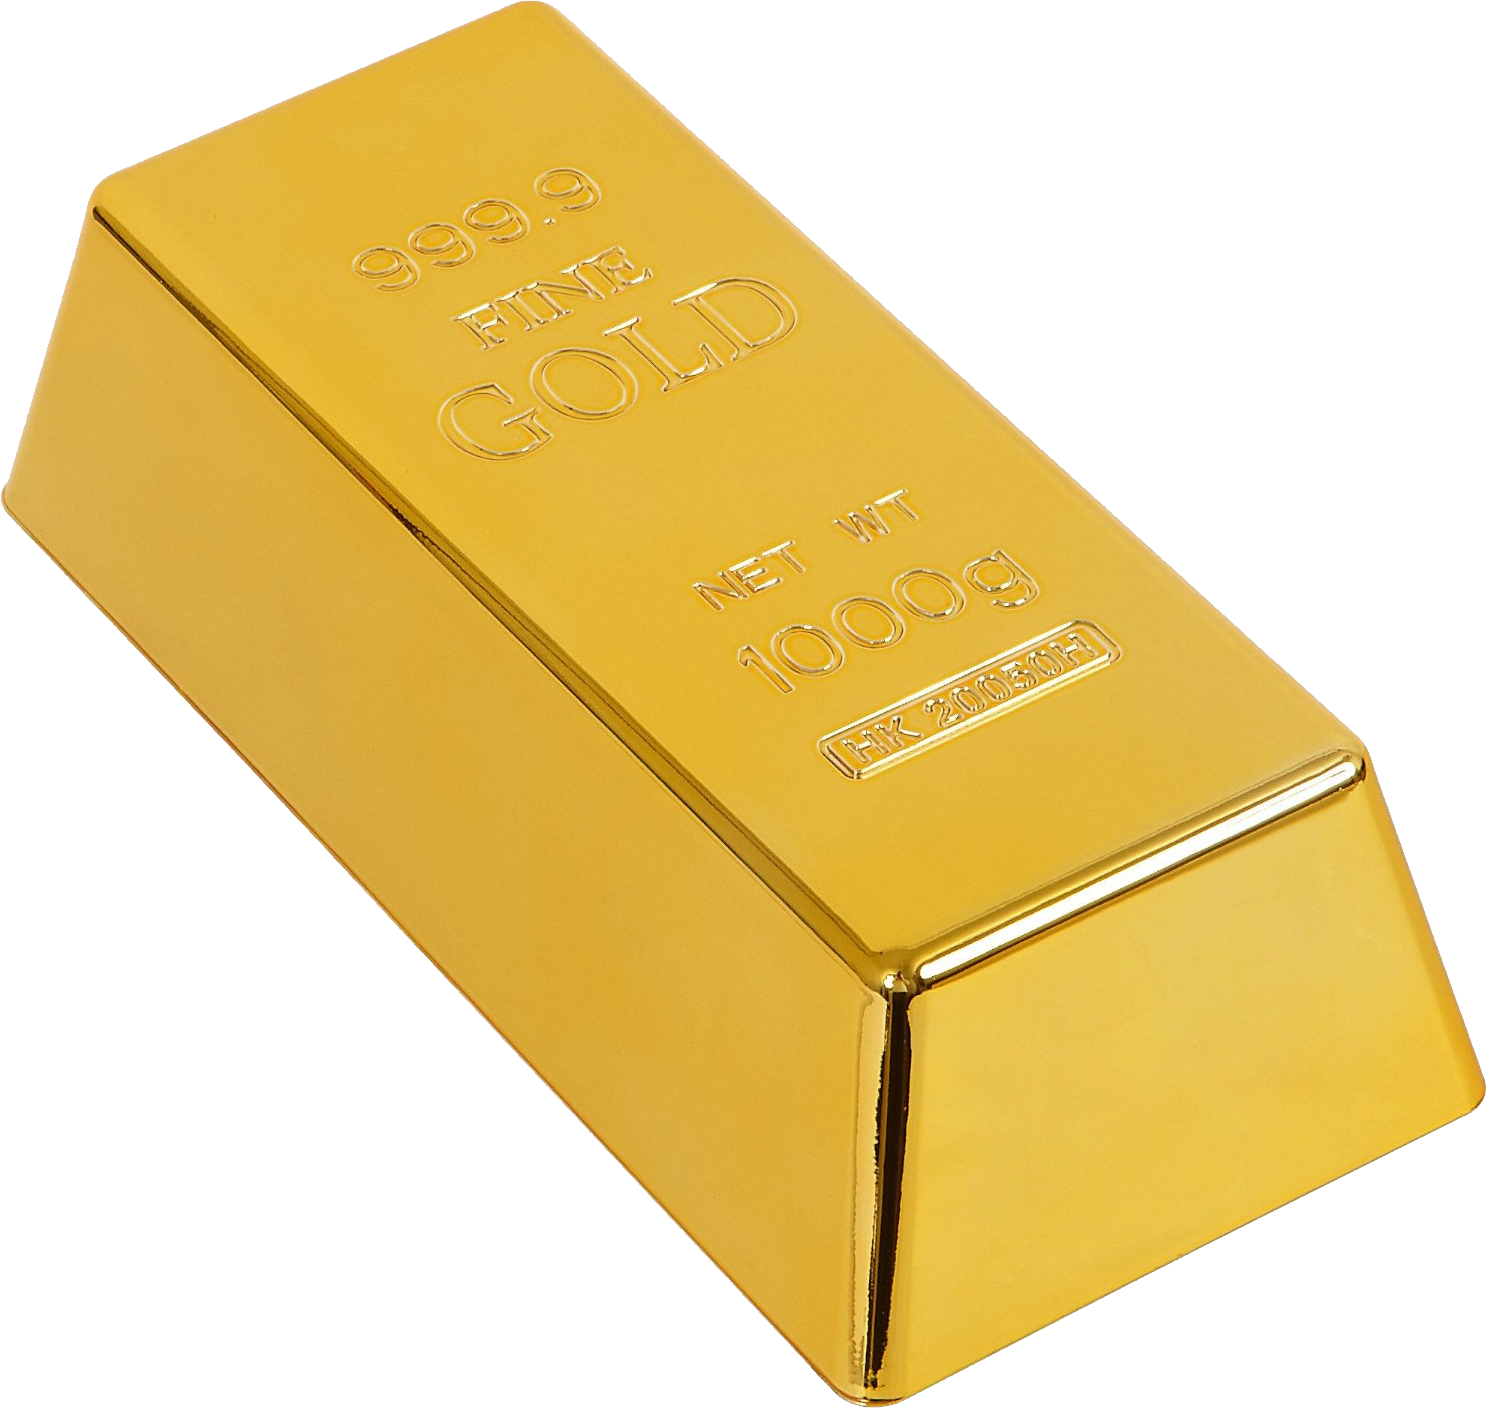 Gold clipart gold brick. Png images free download